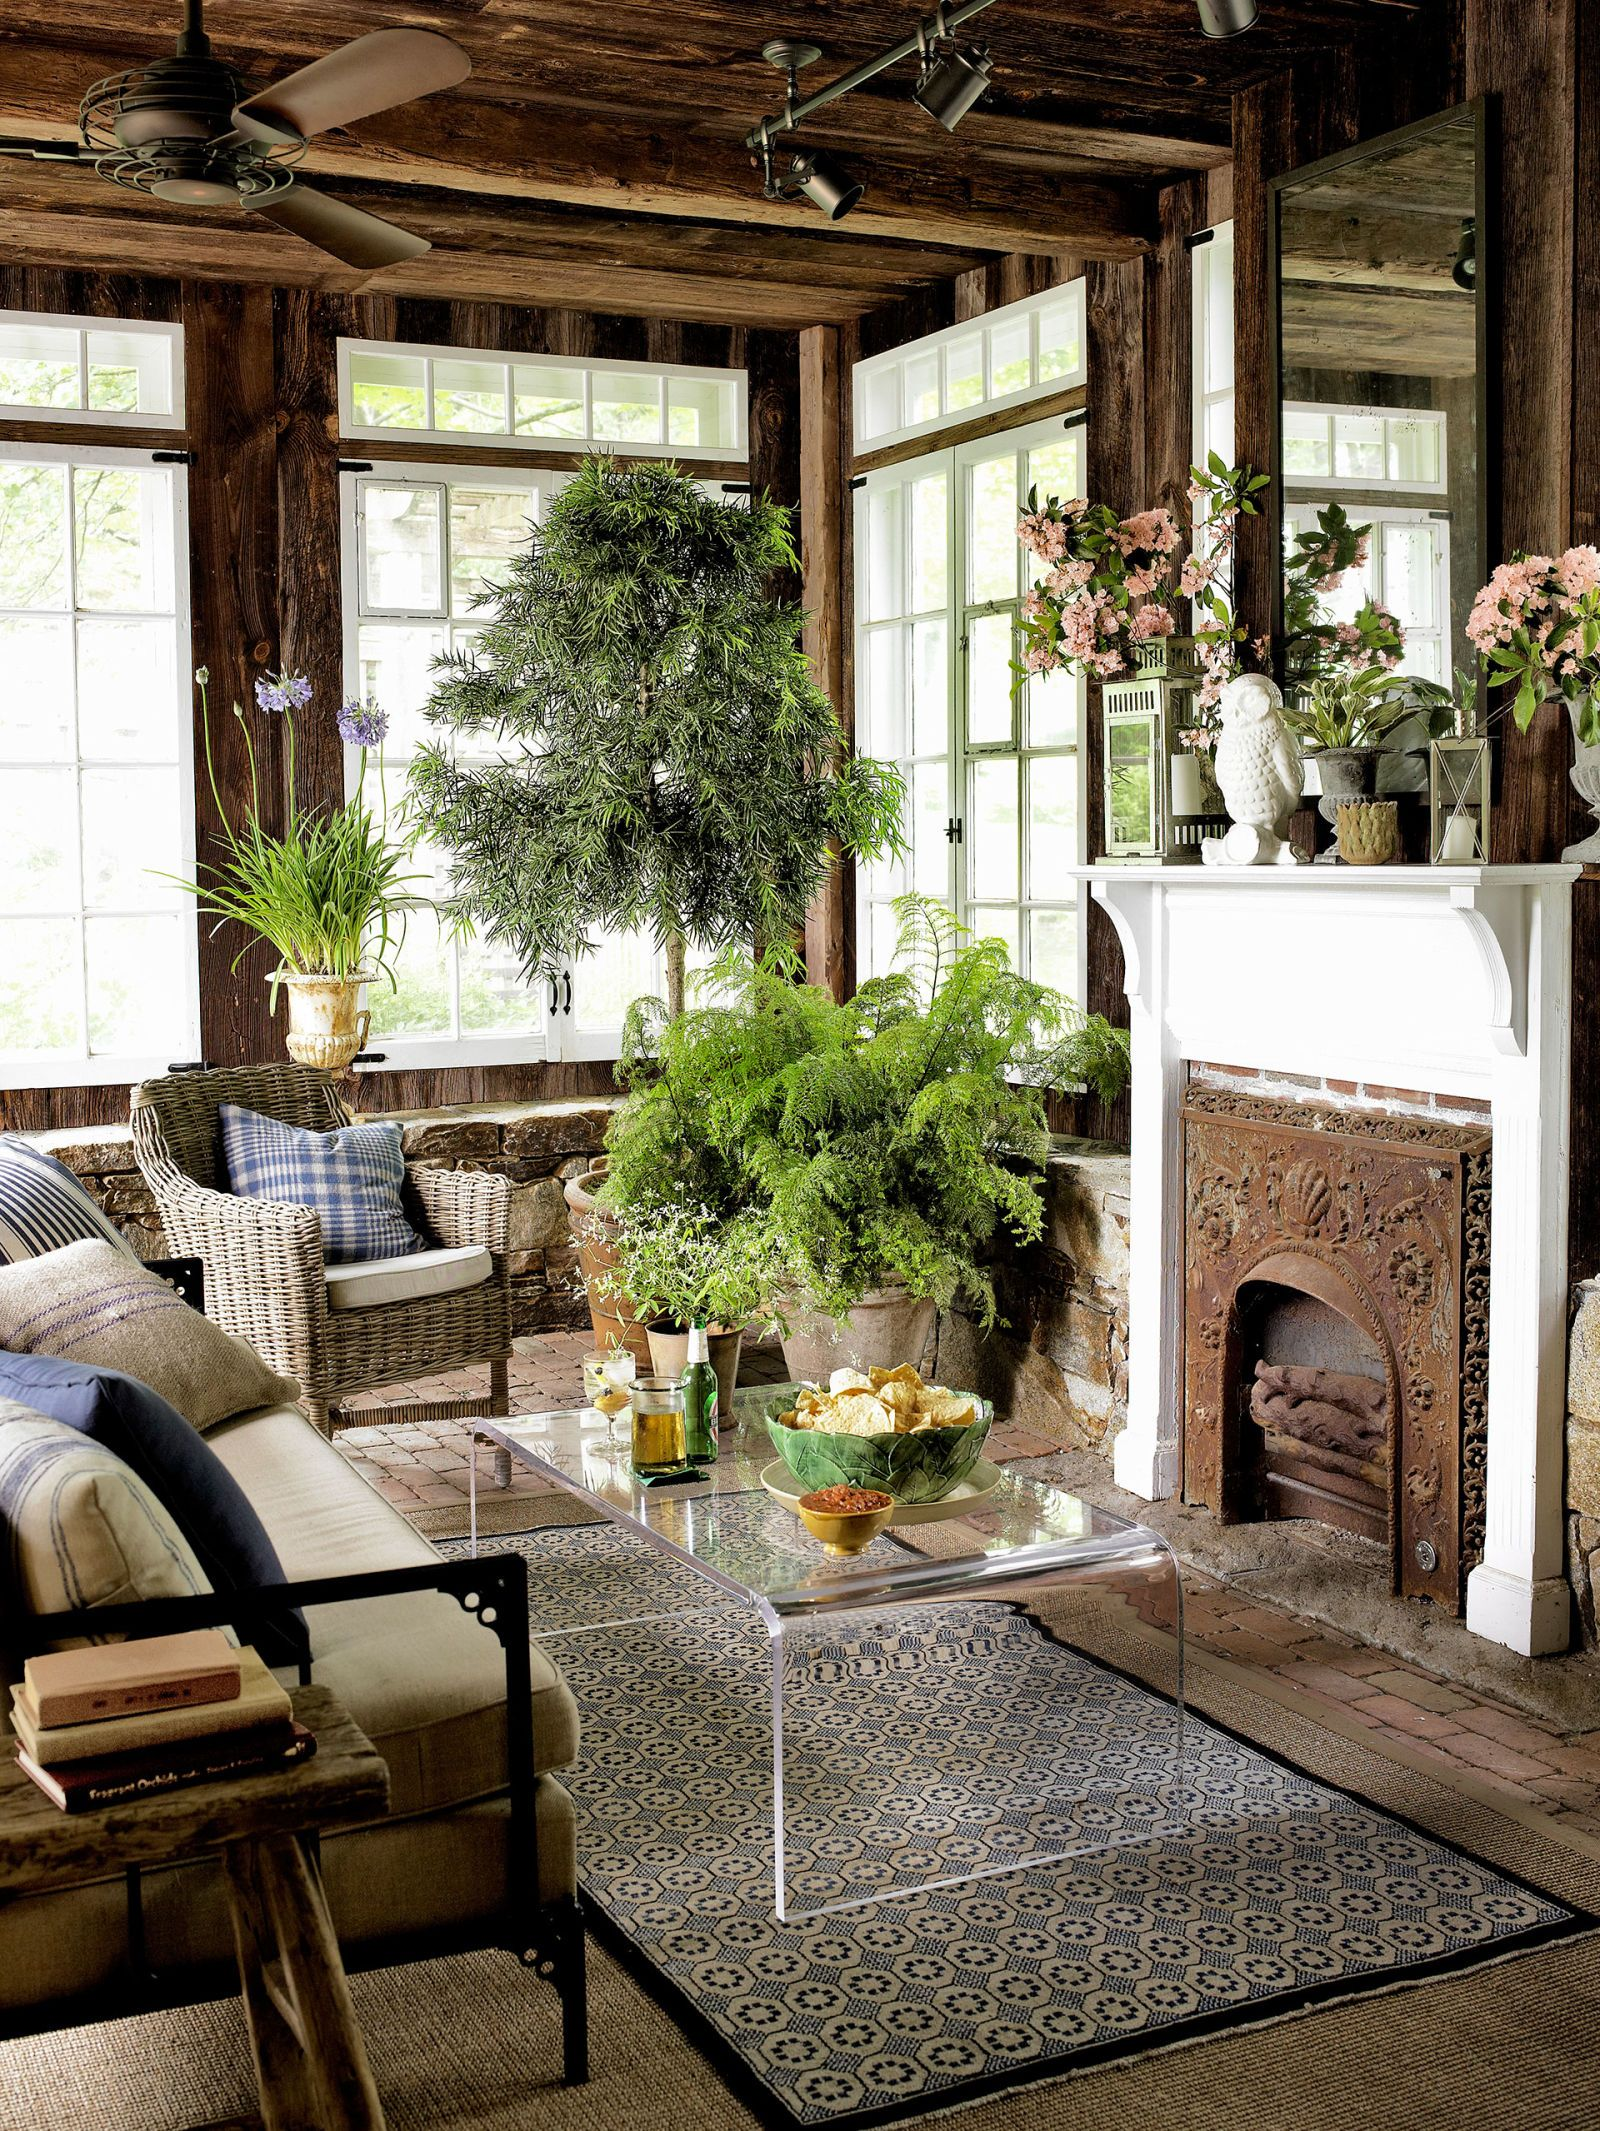 42 cozy country ideas for your fireplace vintage for Sunroom with fireplace designs